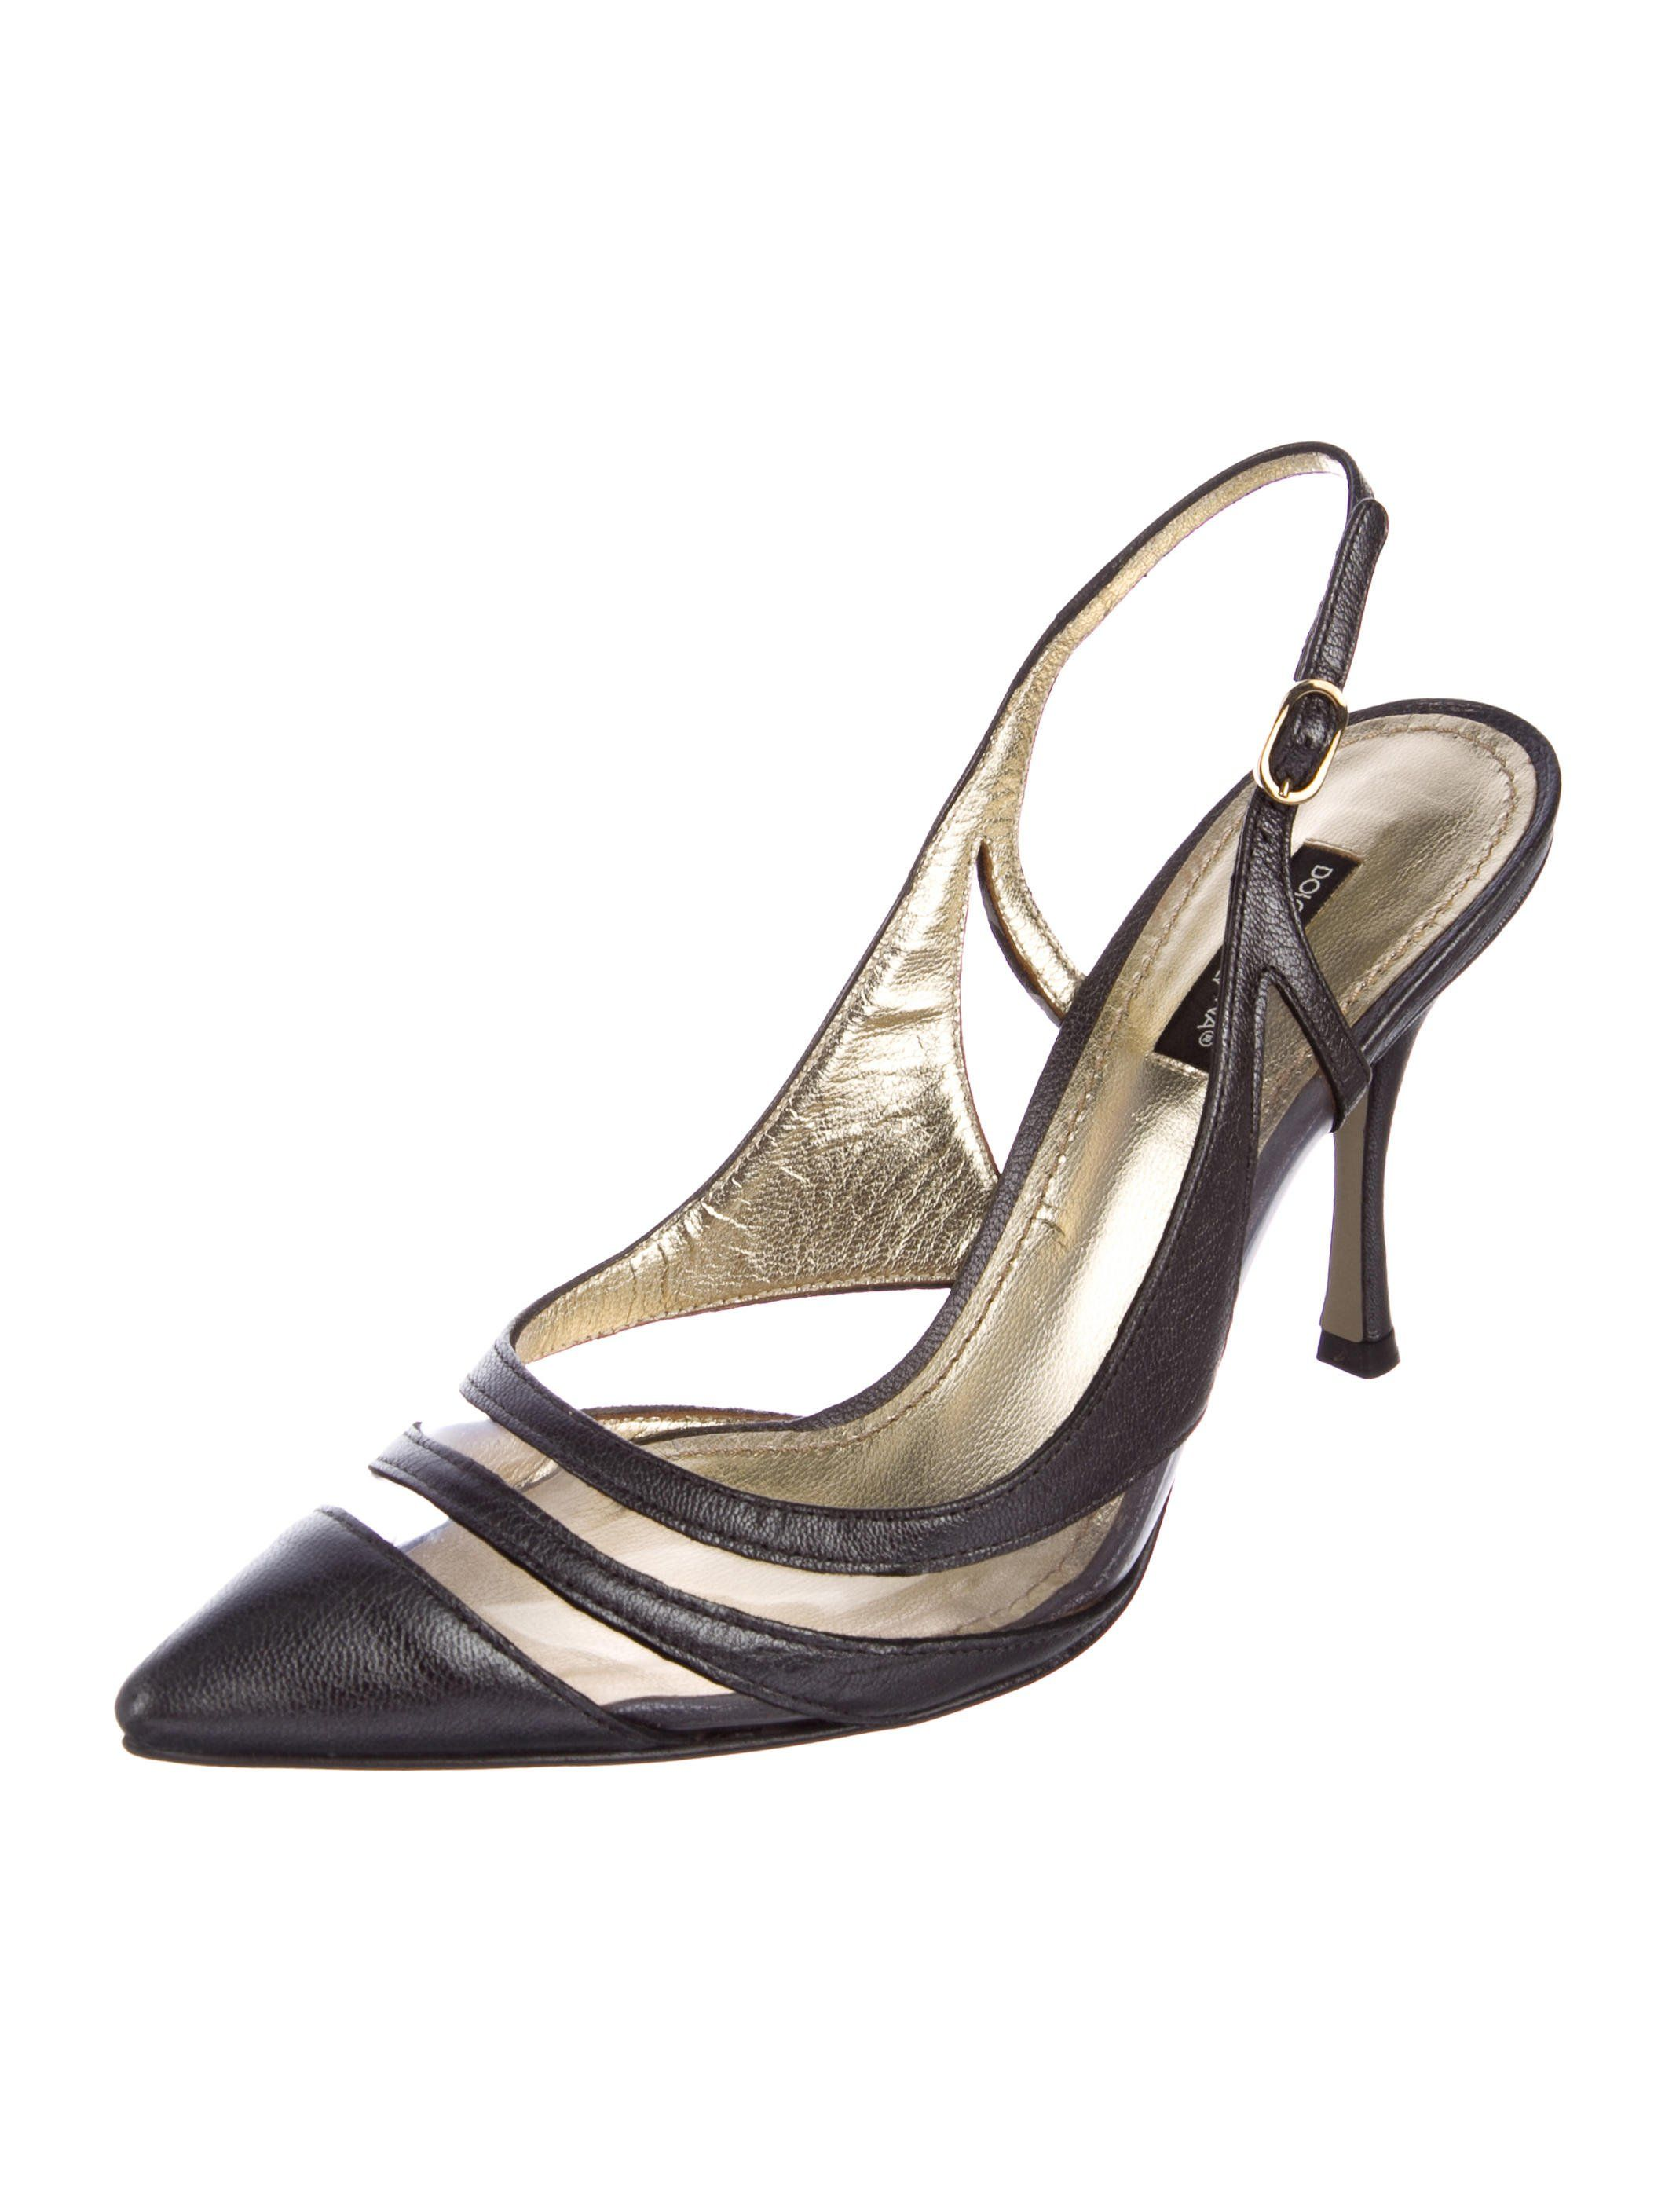 441e0795205 Metallic pewter-tone leather Dolce   Gabbana pointed-toe pumps with clear  PVC stripe embellishments at vamps